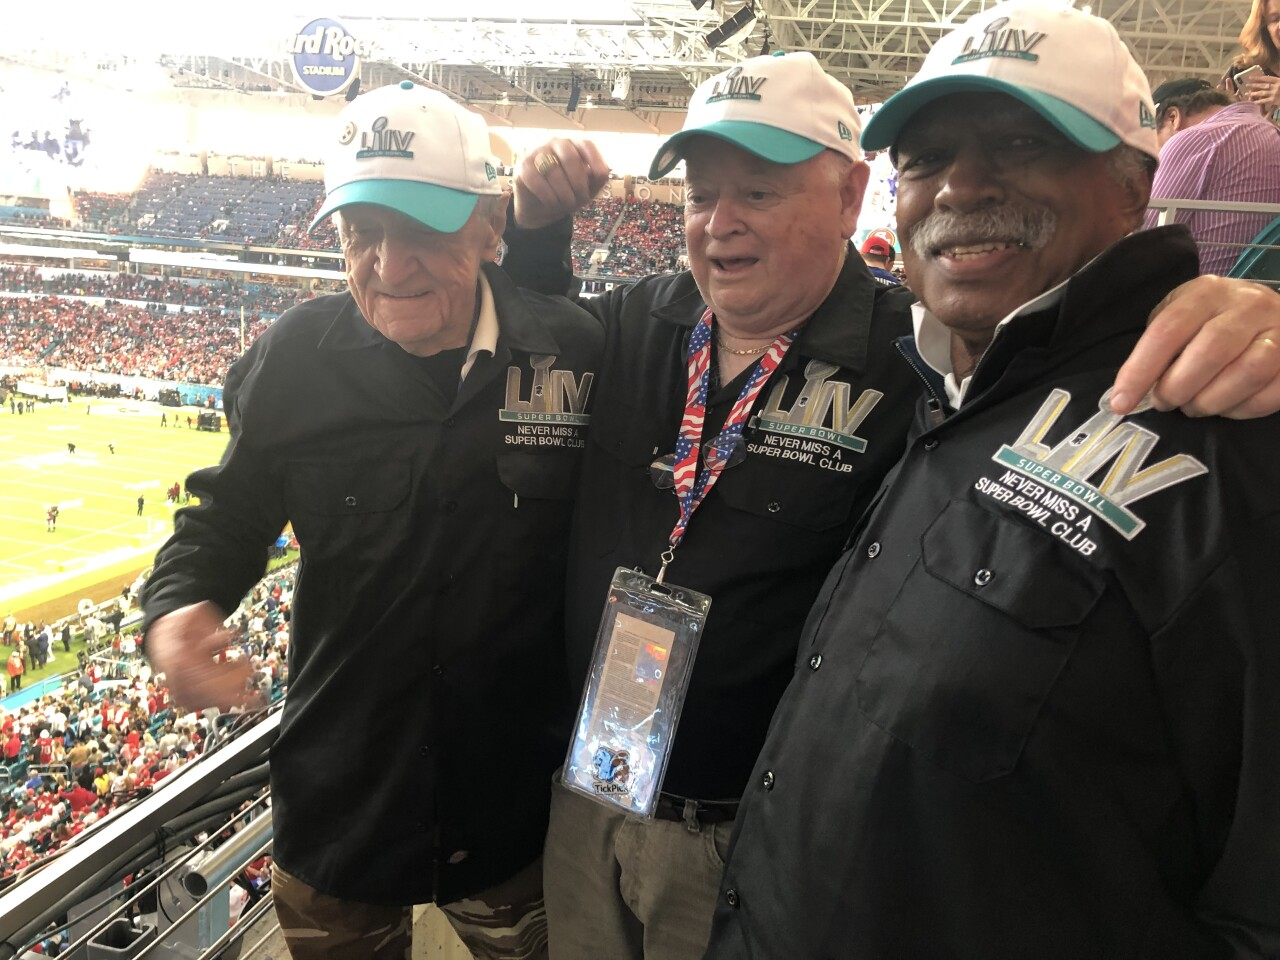 Never Miss a Super Bowl Club attends 55 bowl game